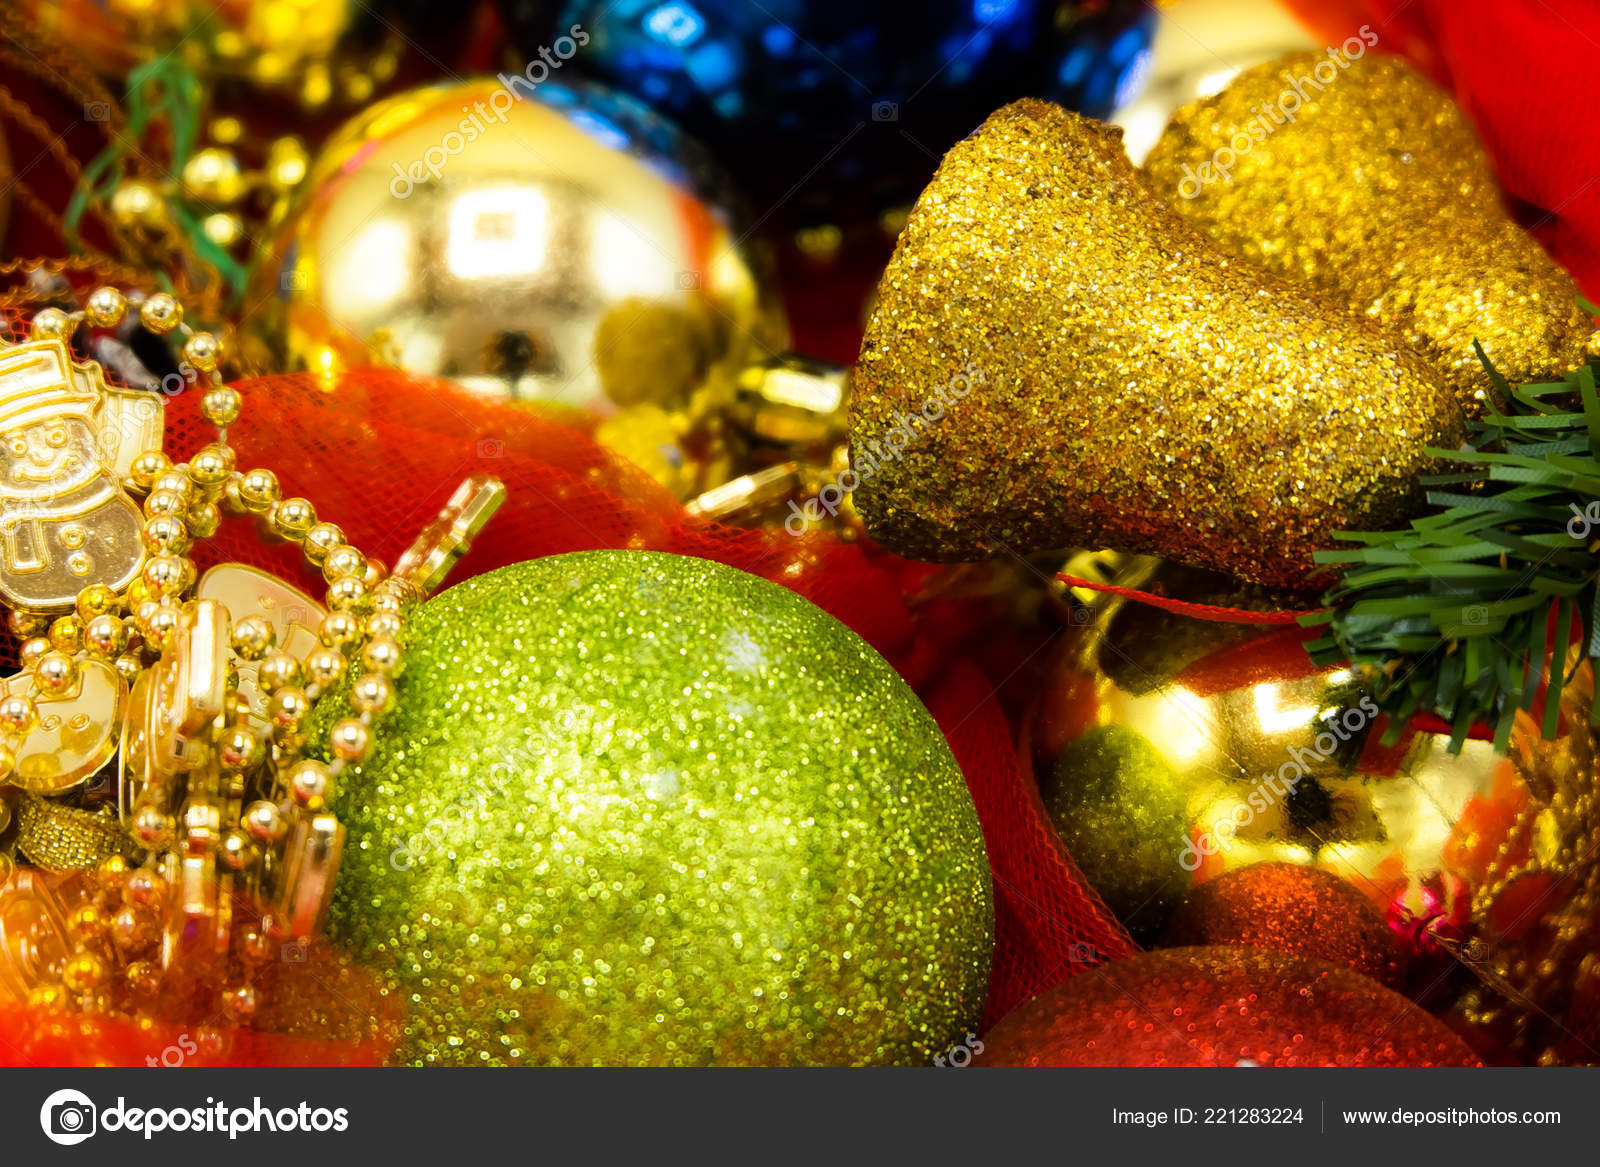 Christmas Vibrant Colorful Wallpaper Background Texture